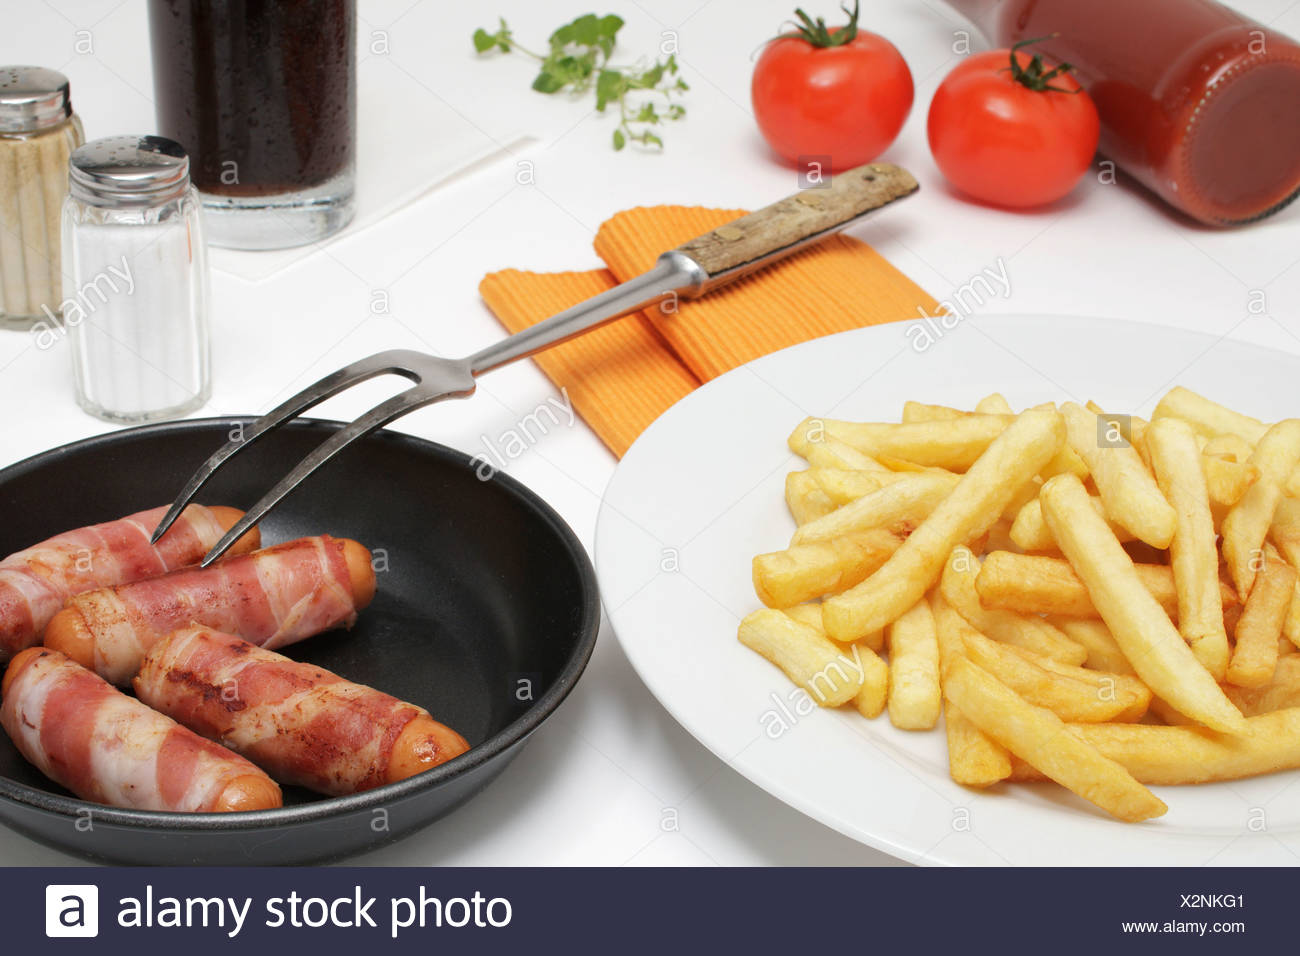 Bernese sausage with french fries, ketchup and Coke - Stock Image